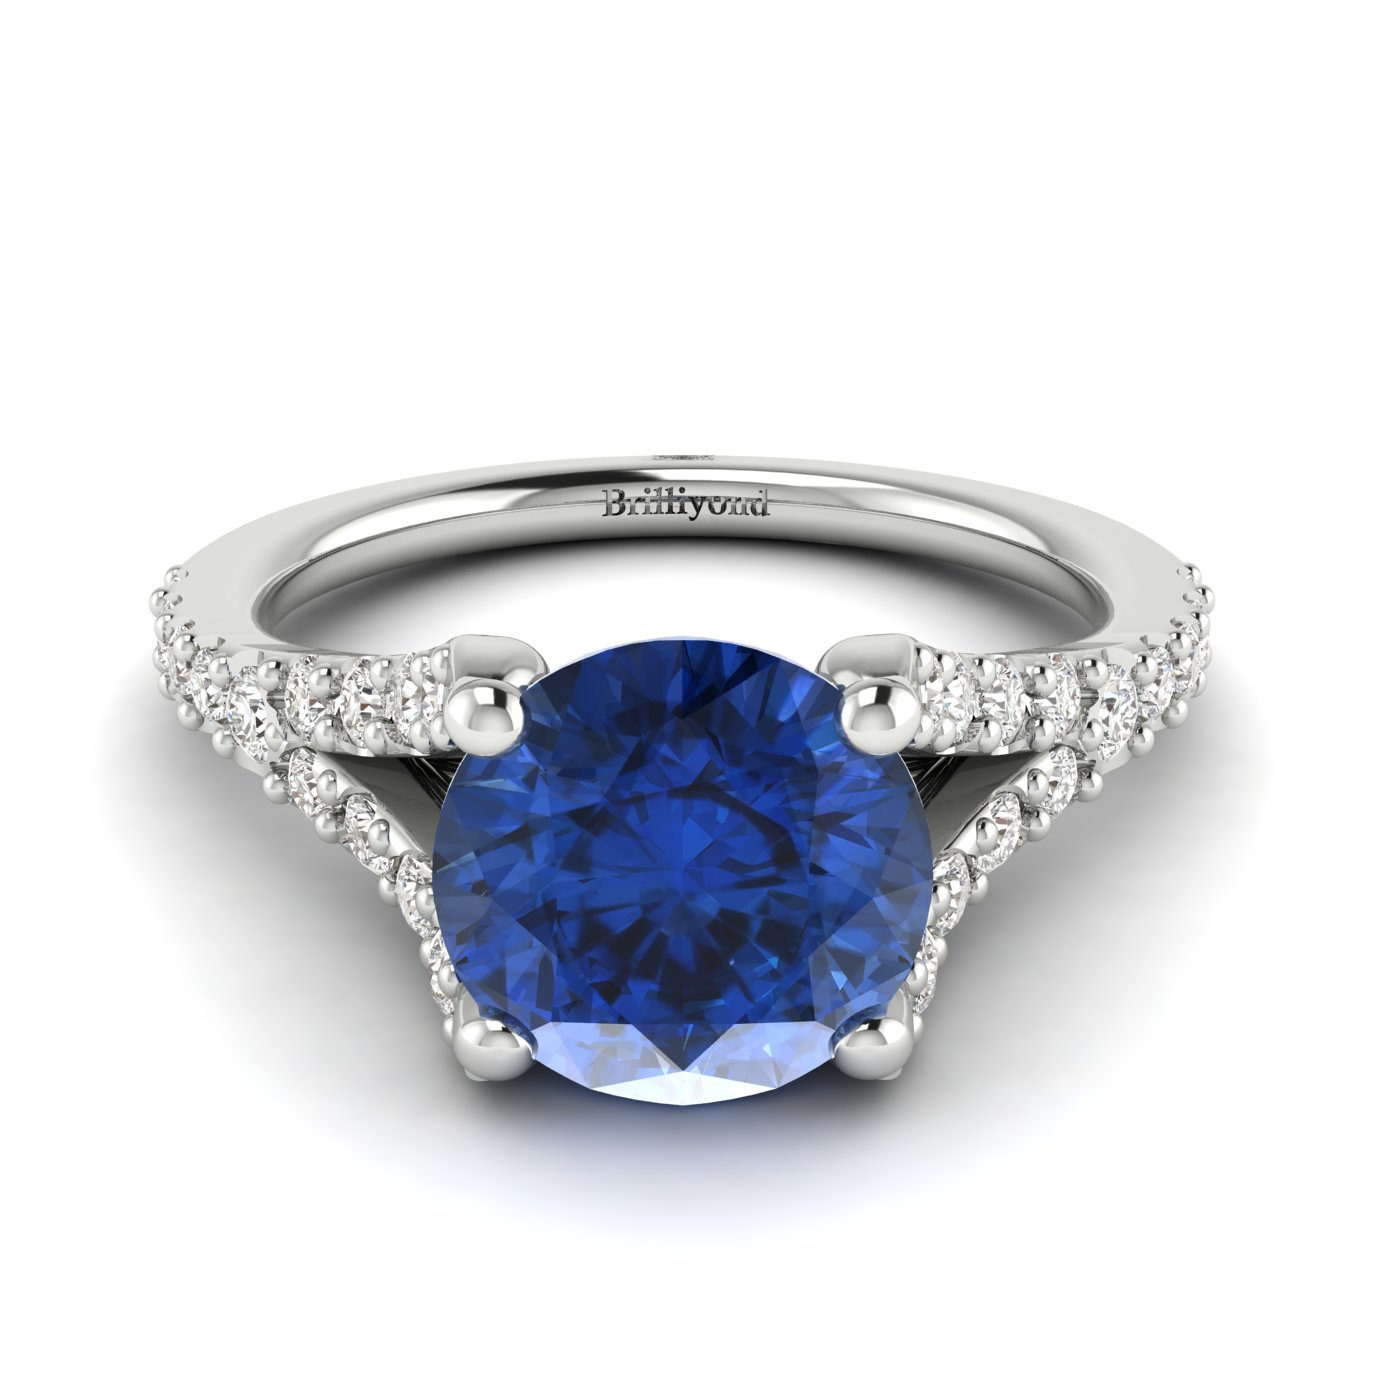 A magnificent blue Ceylon sapphire engagement ring in a solid 18k white gold band.